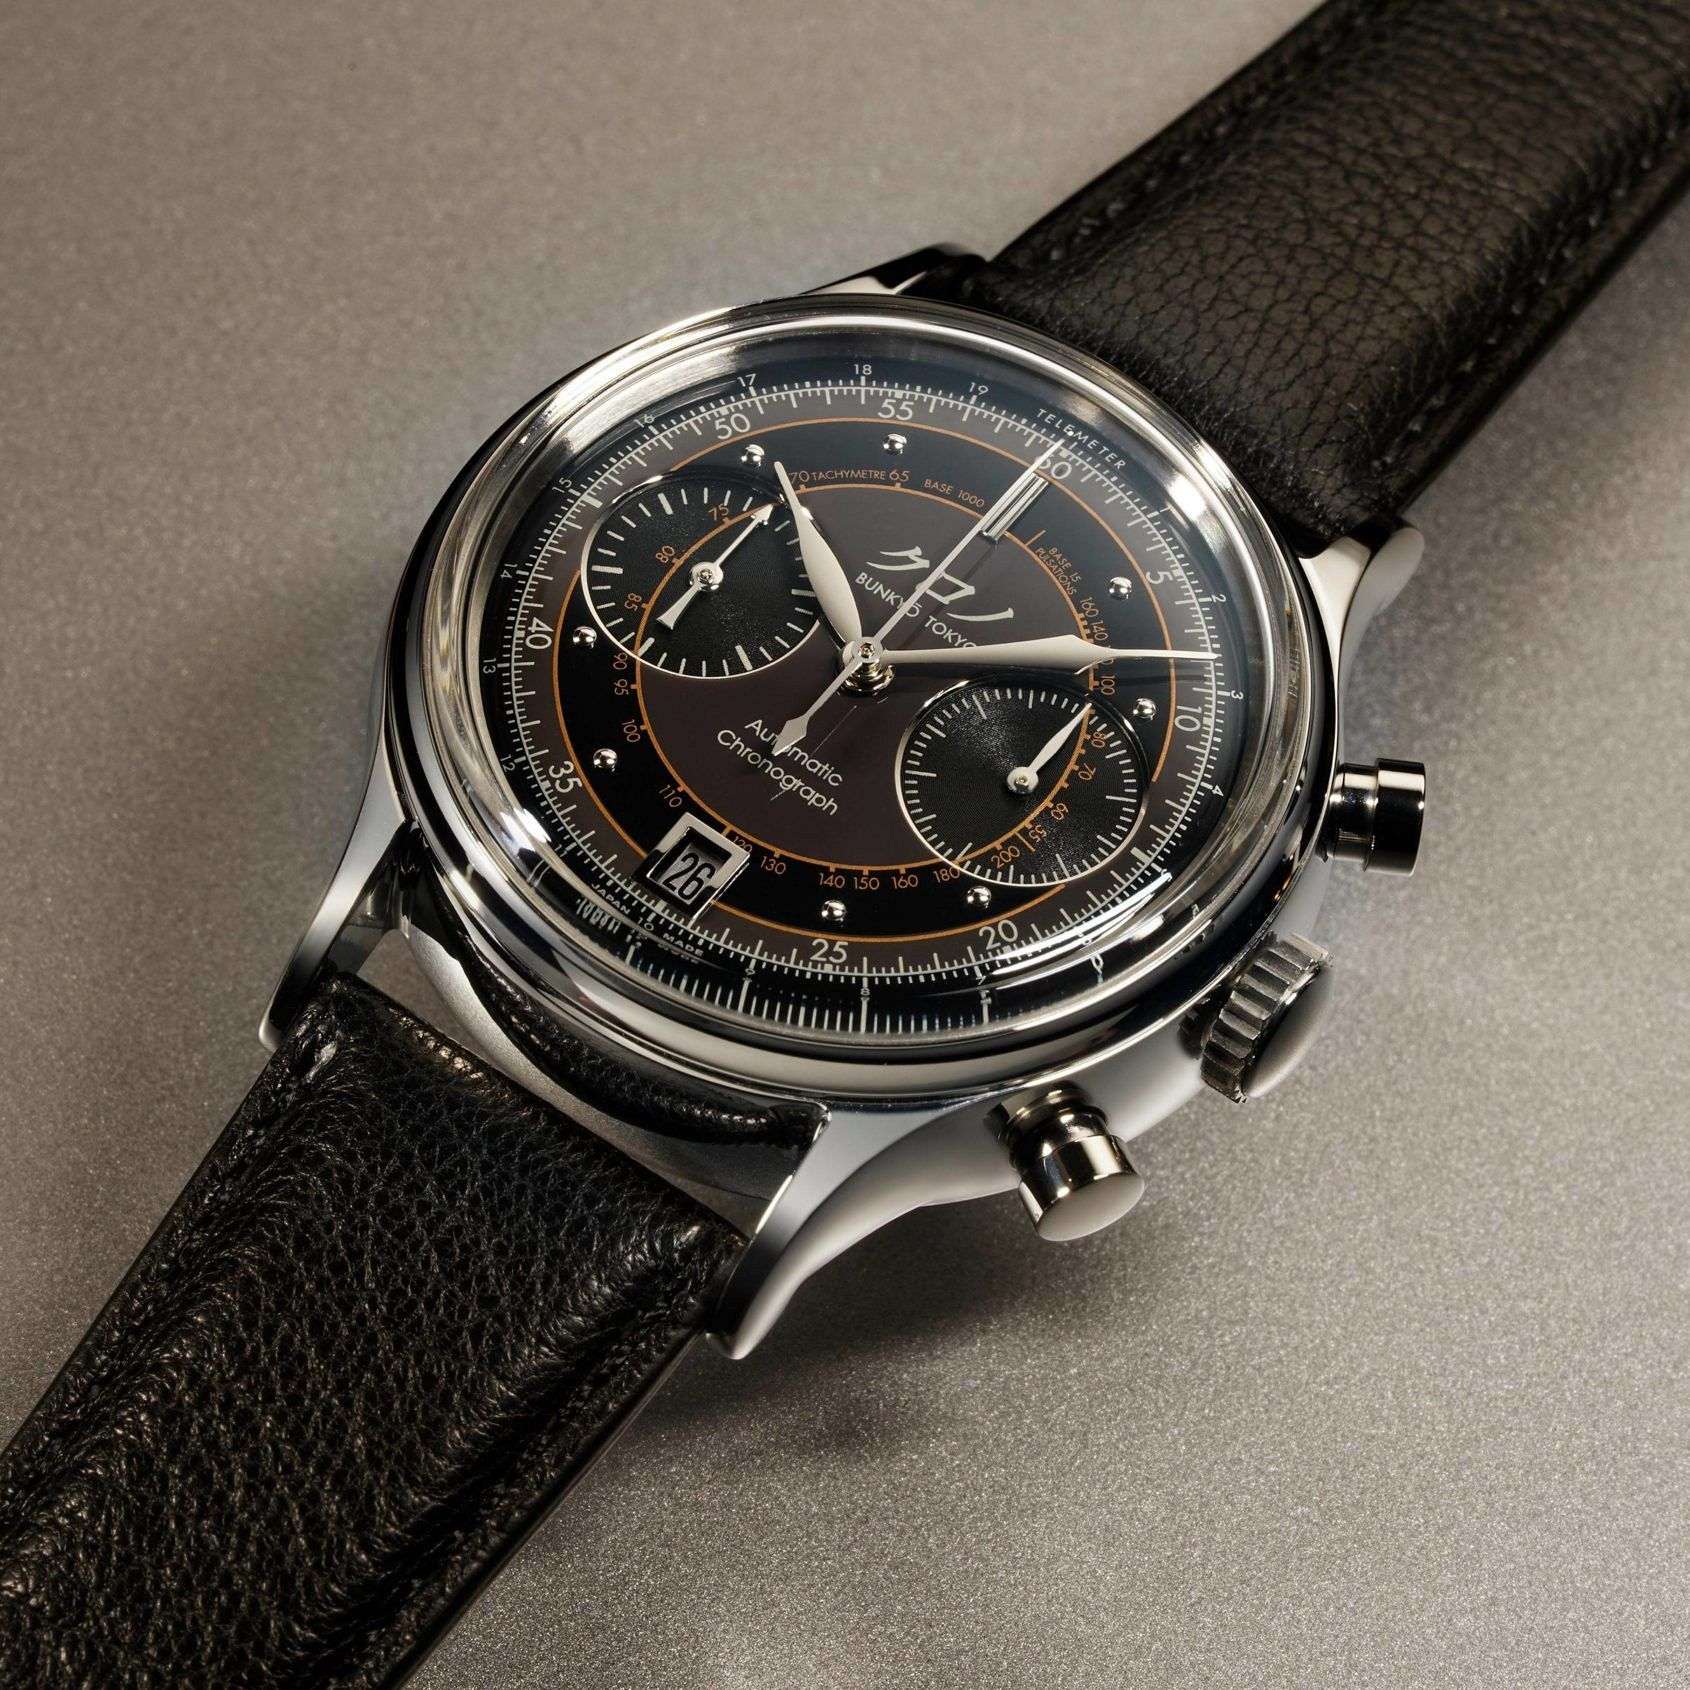 INTRODUCING: Don't miss out – the new Kurono Chronograph 2 from the cult Japanese brand will sell out fast